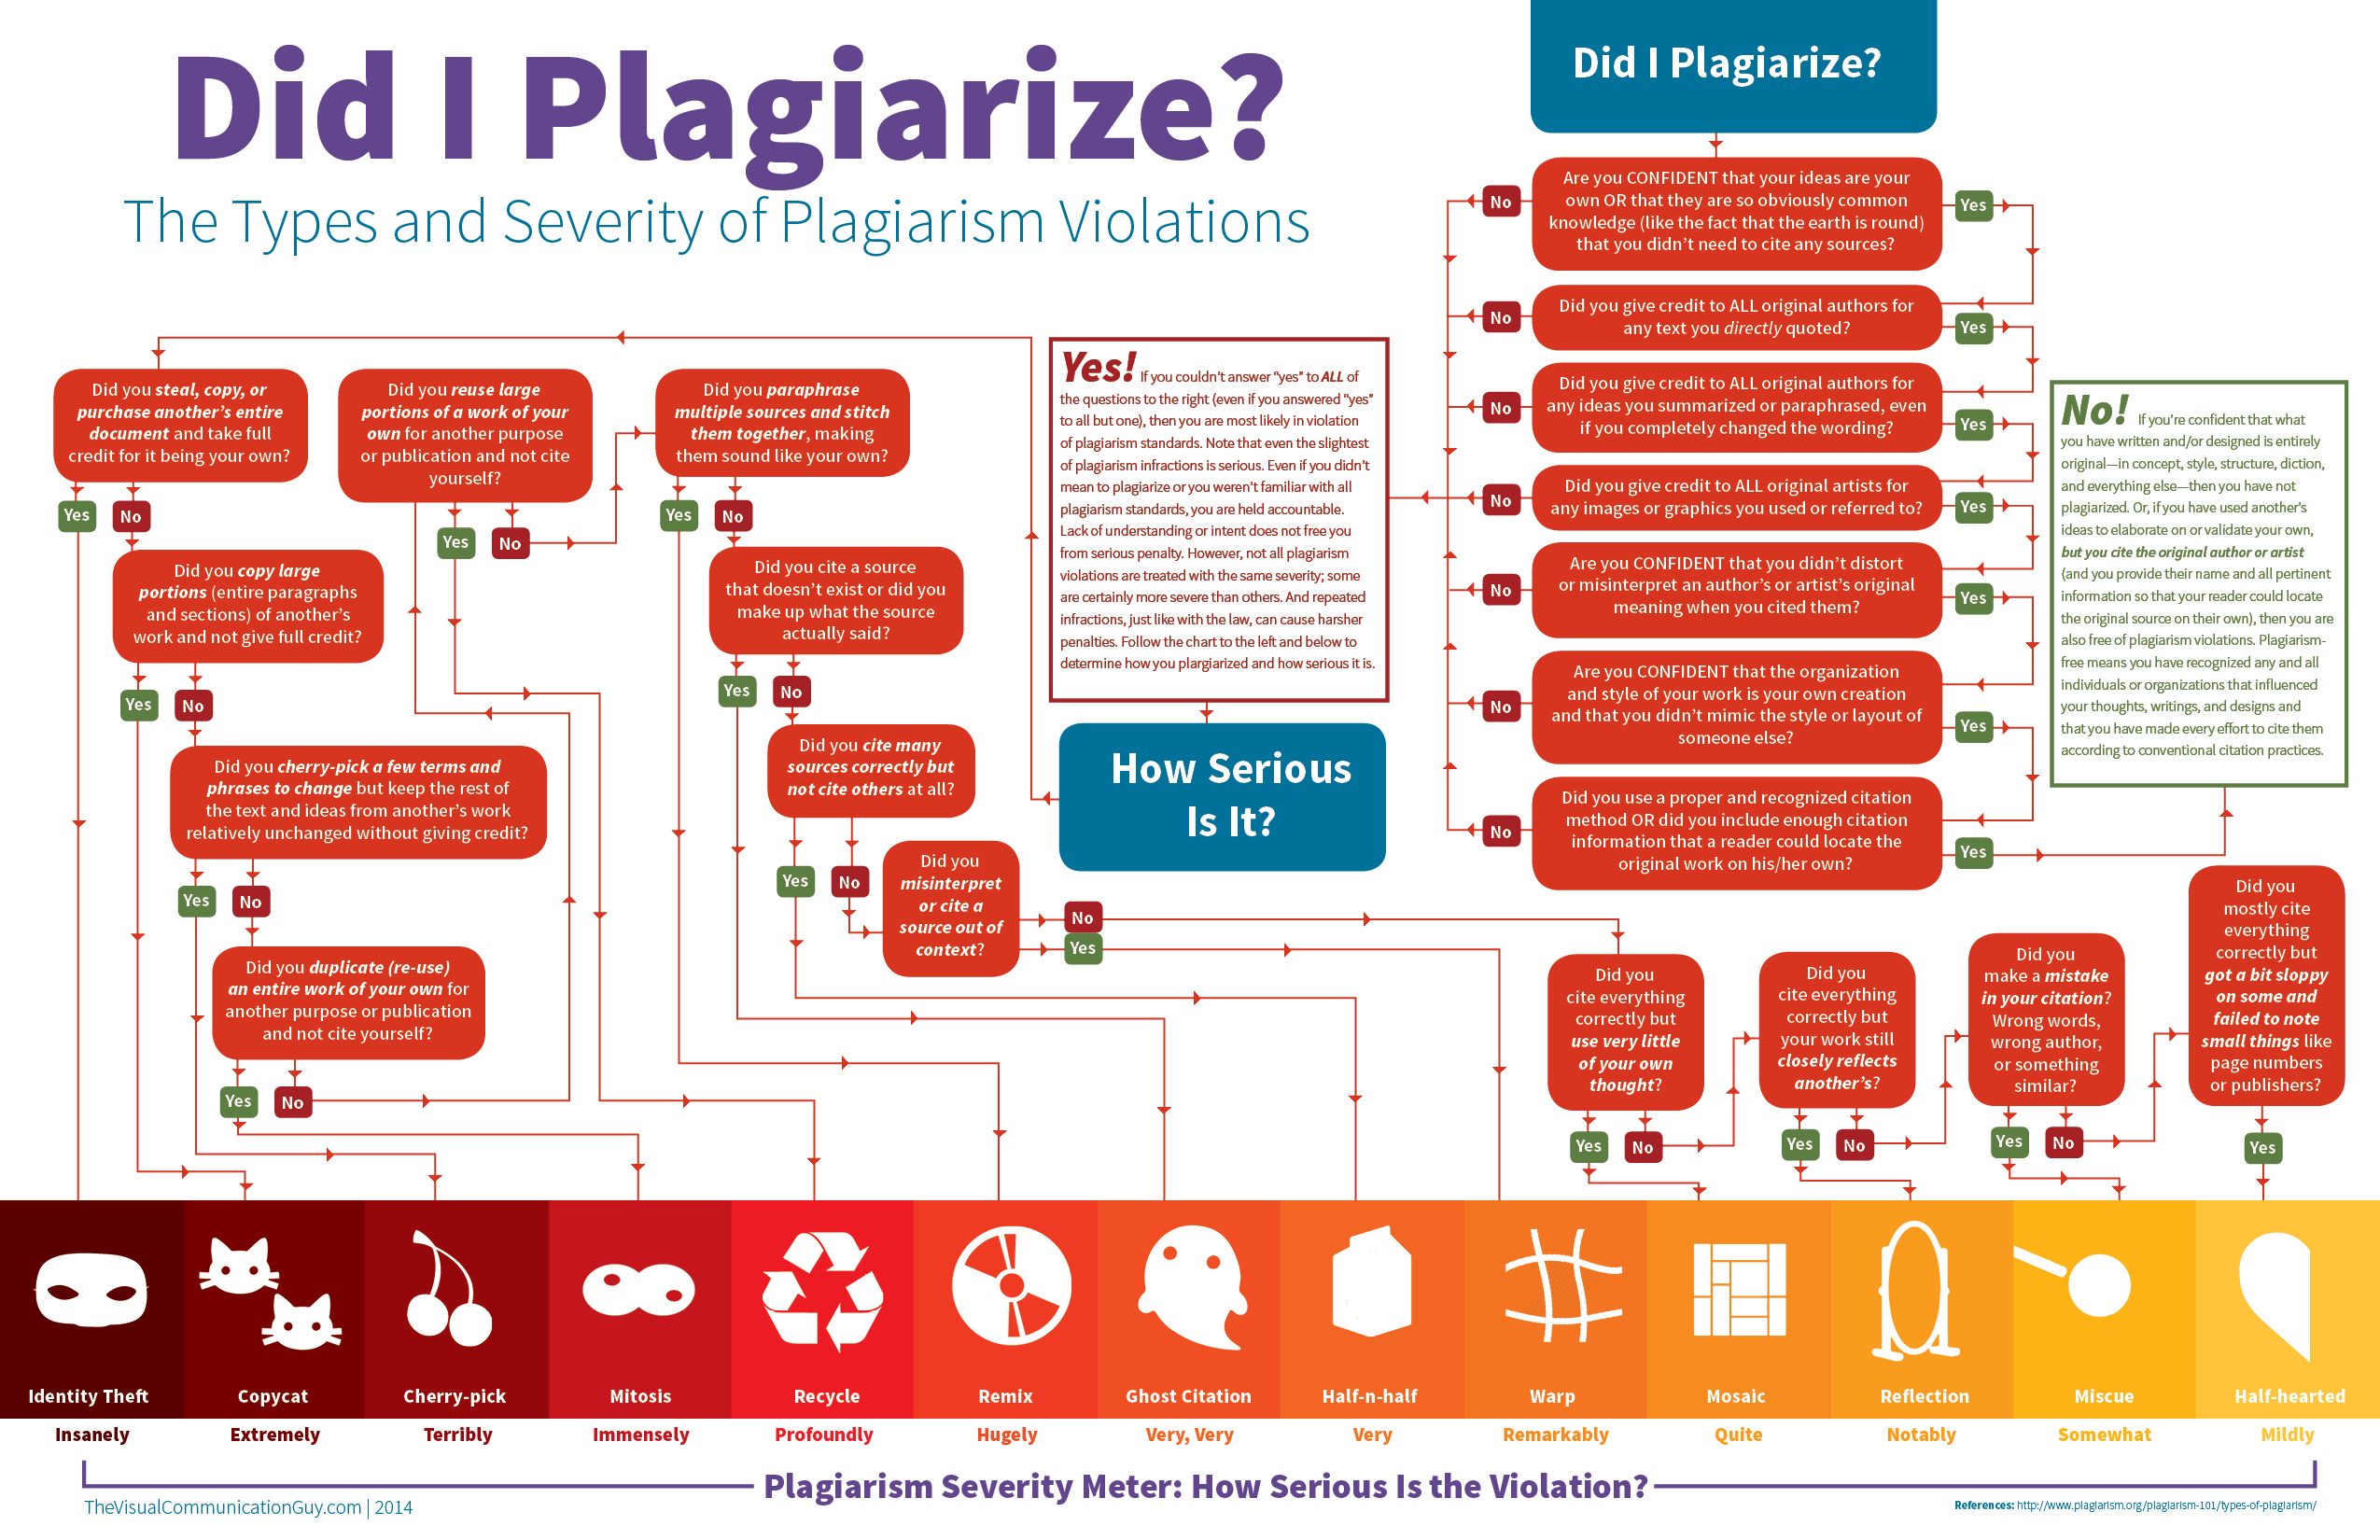 Picture of the representing the severity of plagiarism